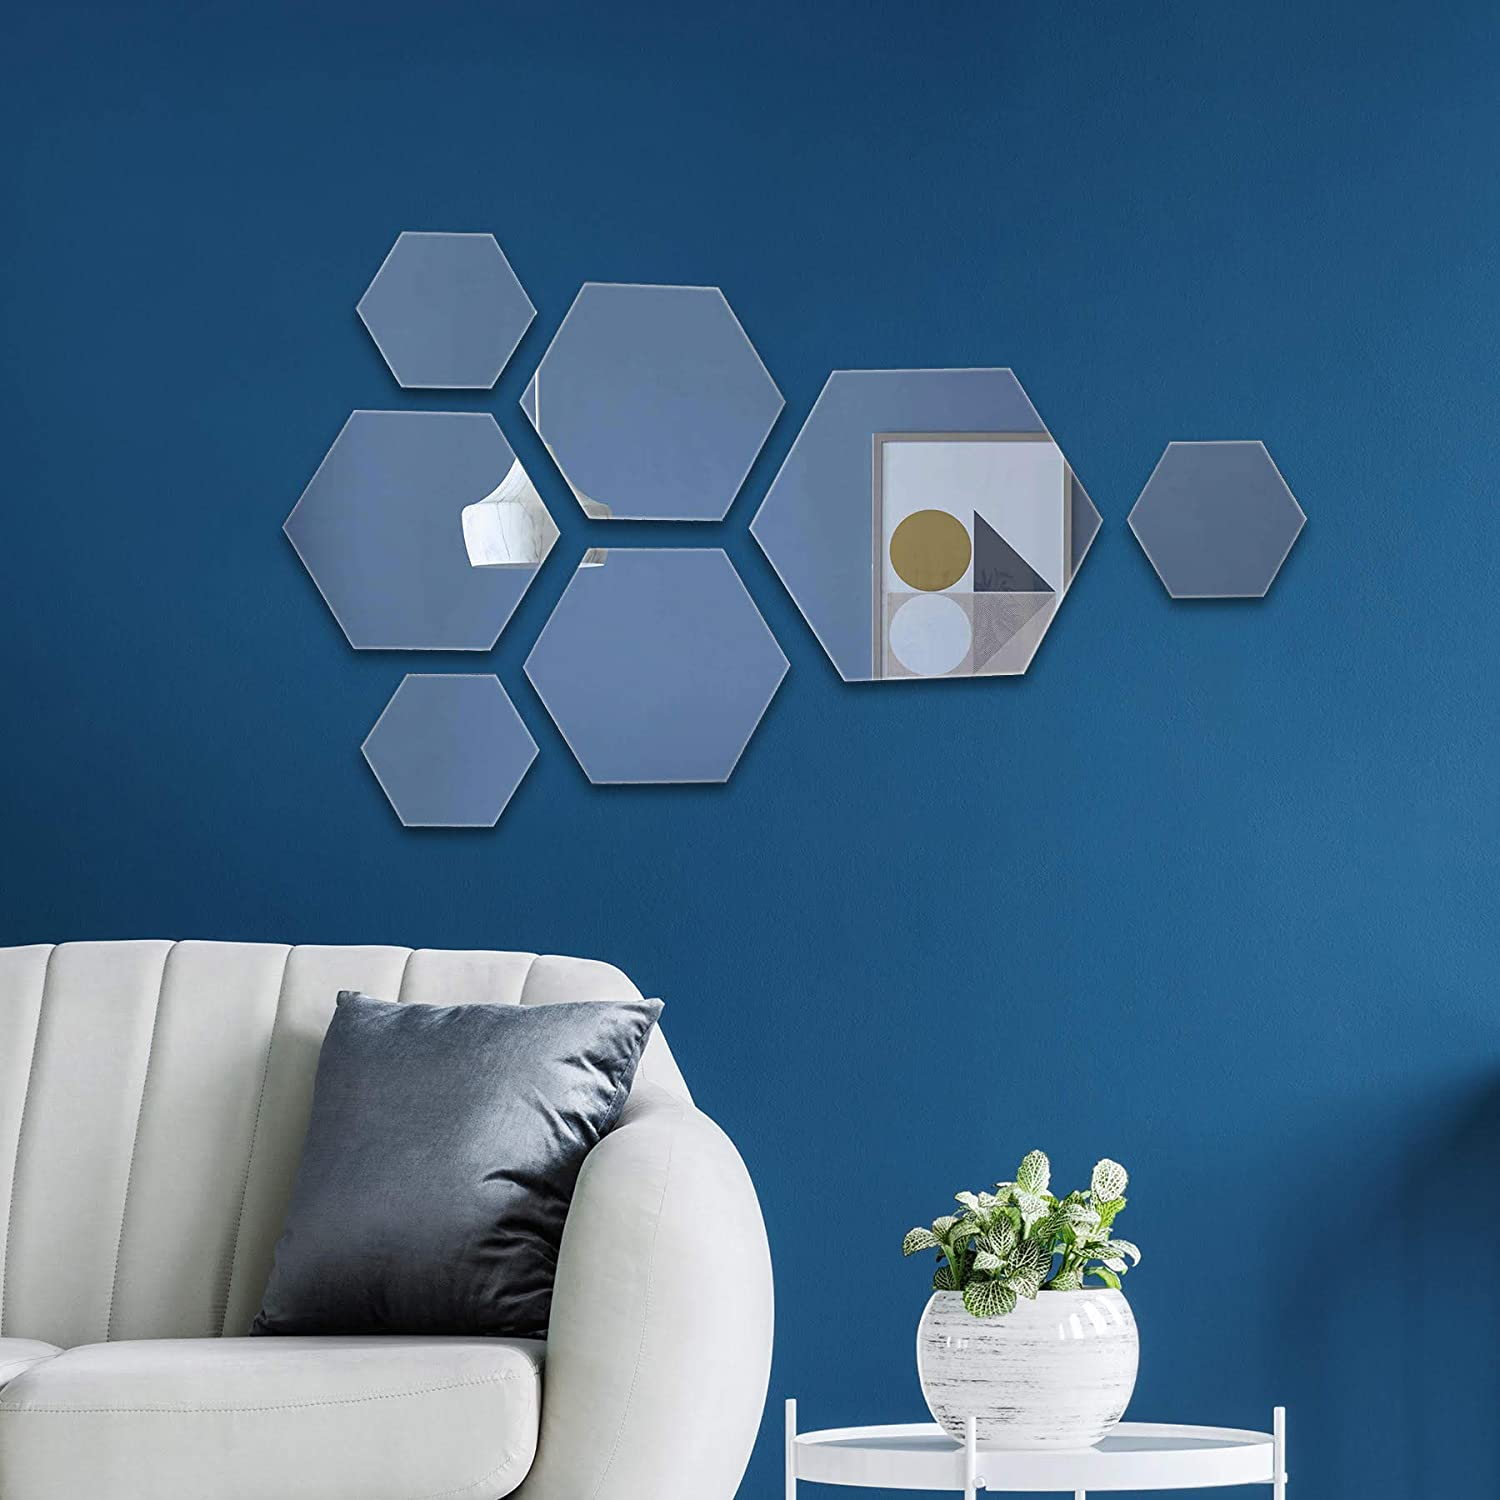 """PARNOO Hexagon Mirror Wall Mounted Assorted Sizes (1x10"""", 3x7"""", 3x4"""") Set of 7 Hexagonal Glass Mirrors Decoration for Living Room, Bedroom, Bathroom or Statement Wall."""